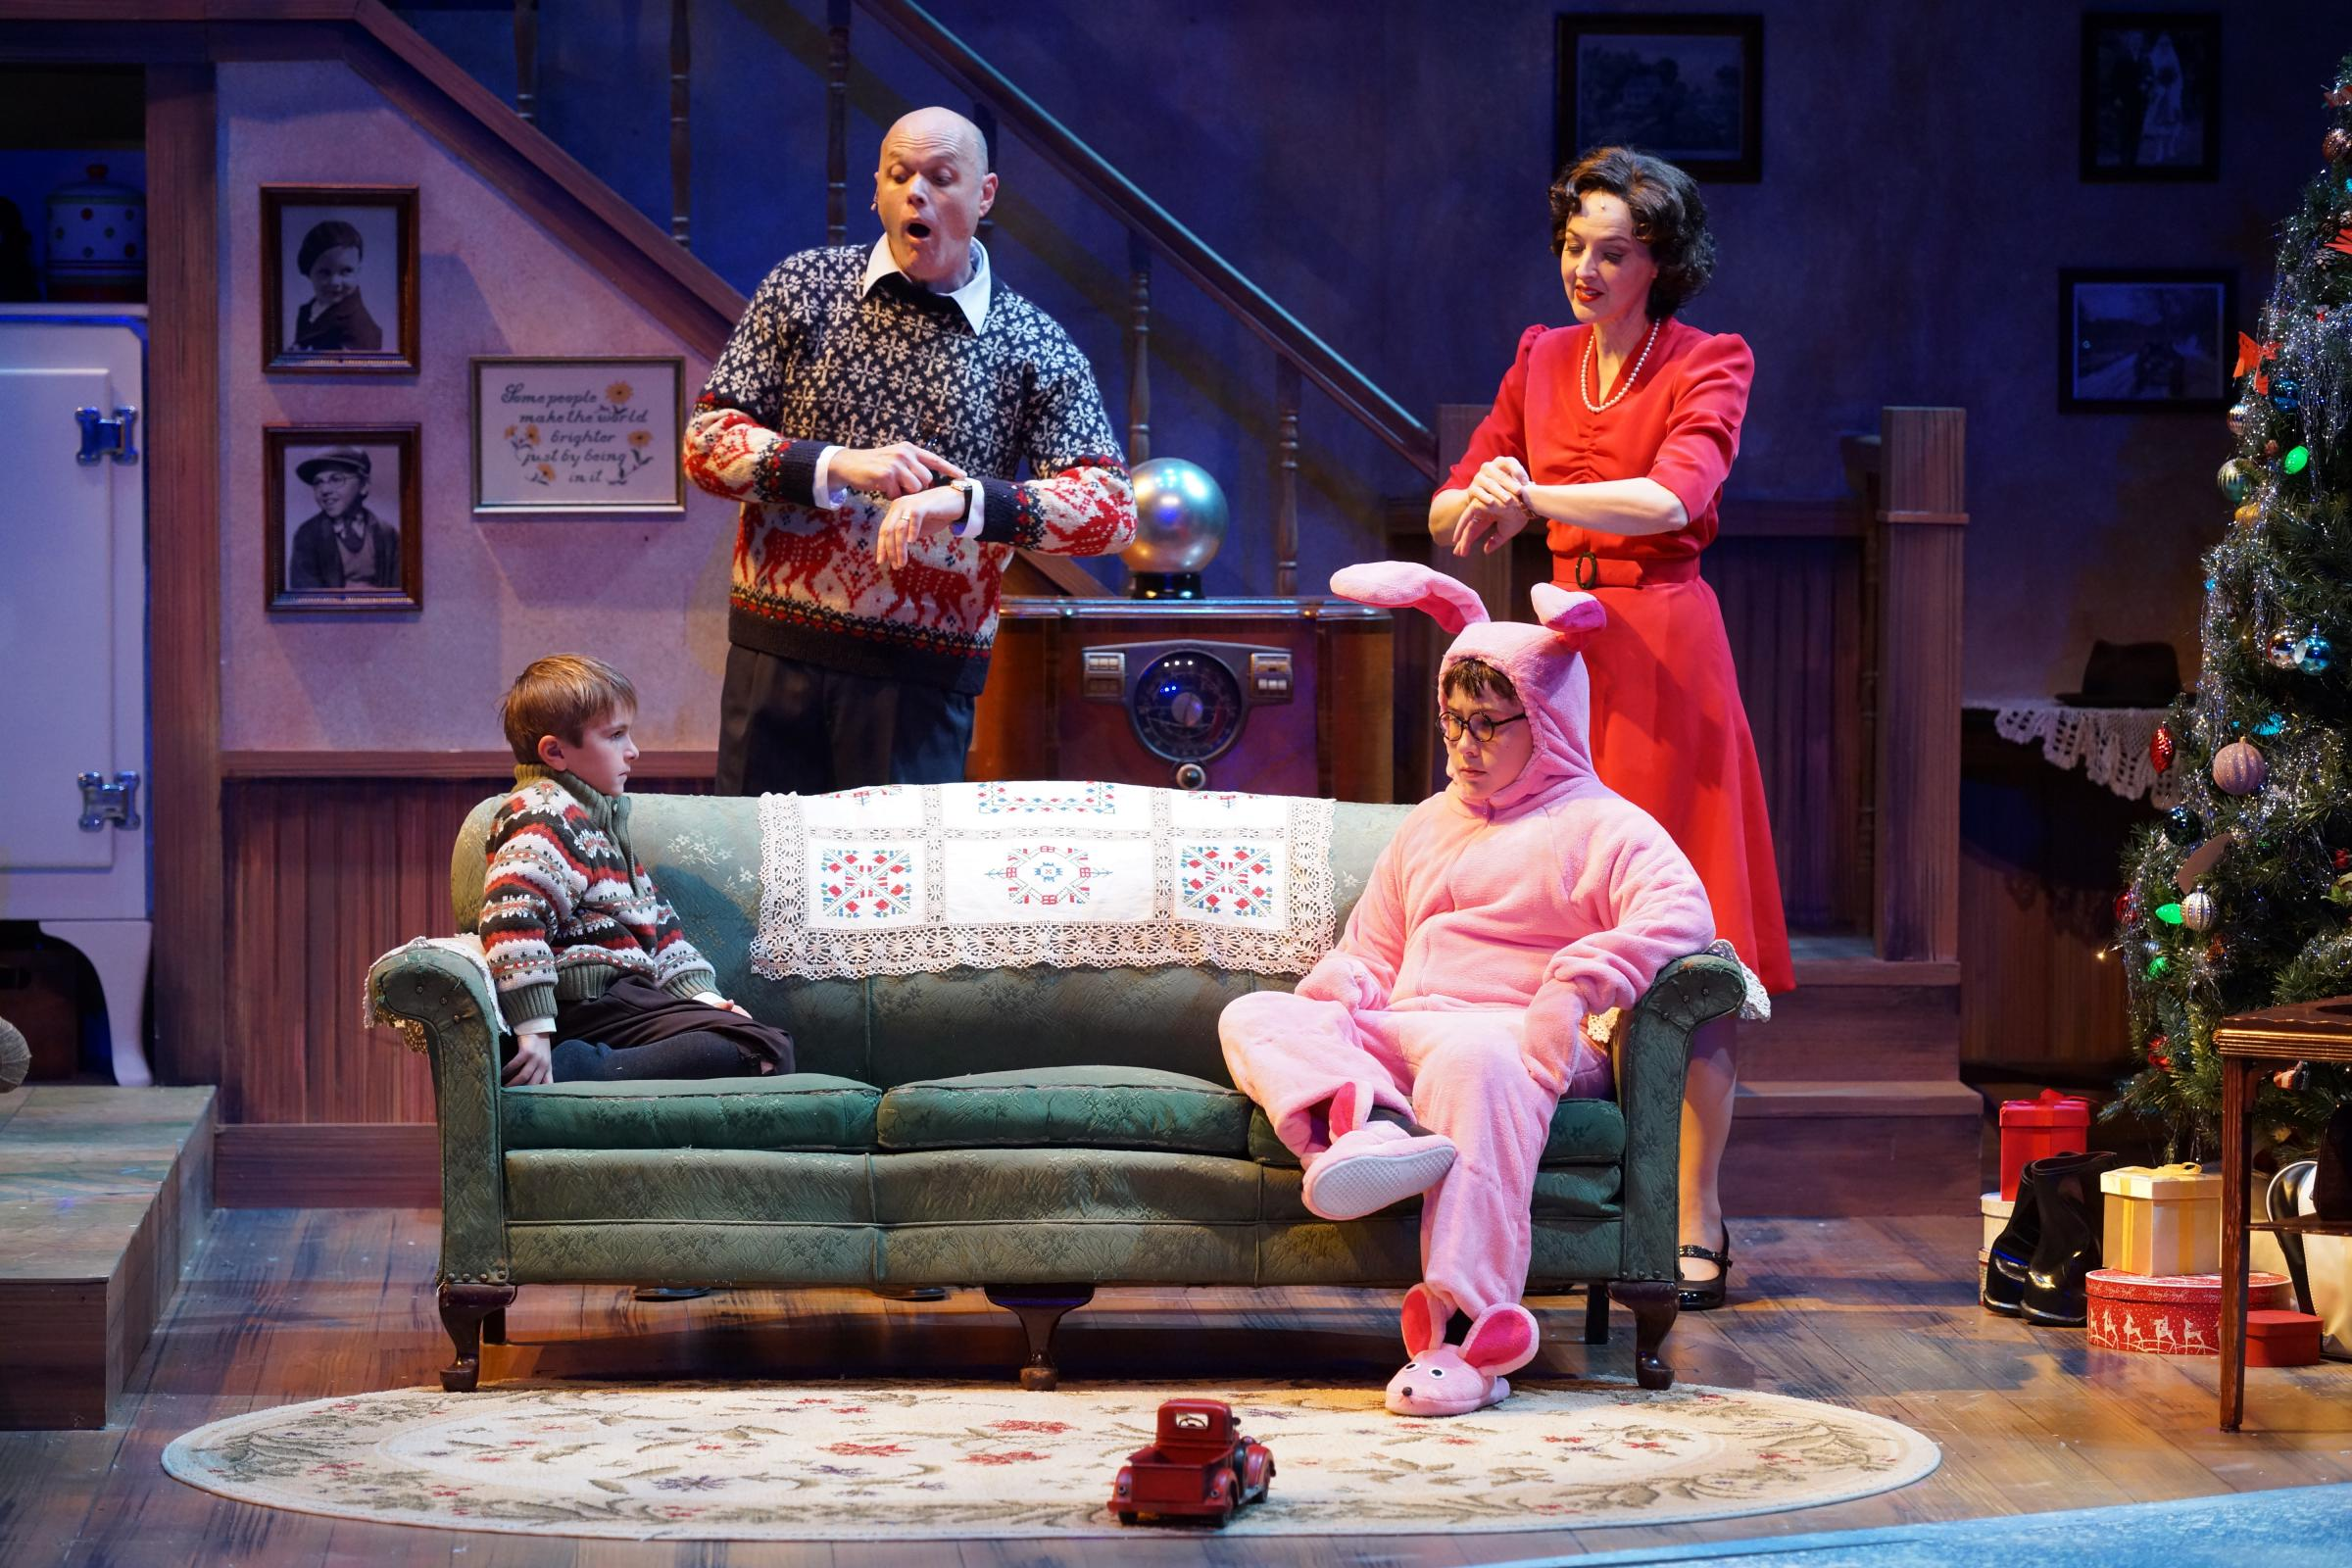 william may chris gibson keaton brandt meredith mccall in a christmas story - What Year Is Christmas Story Set